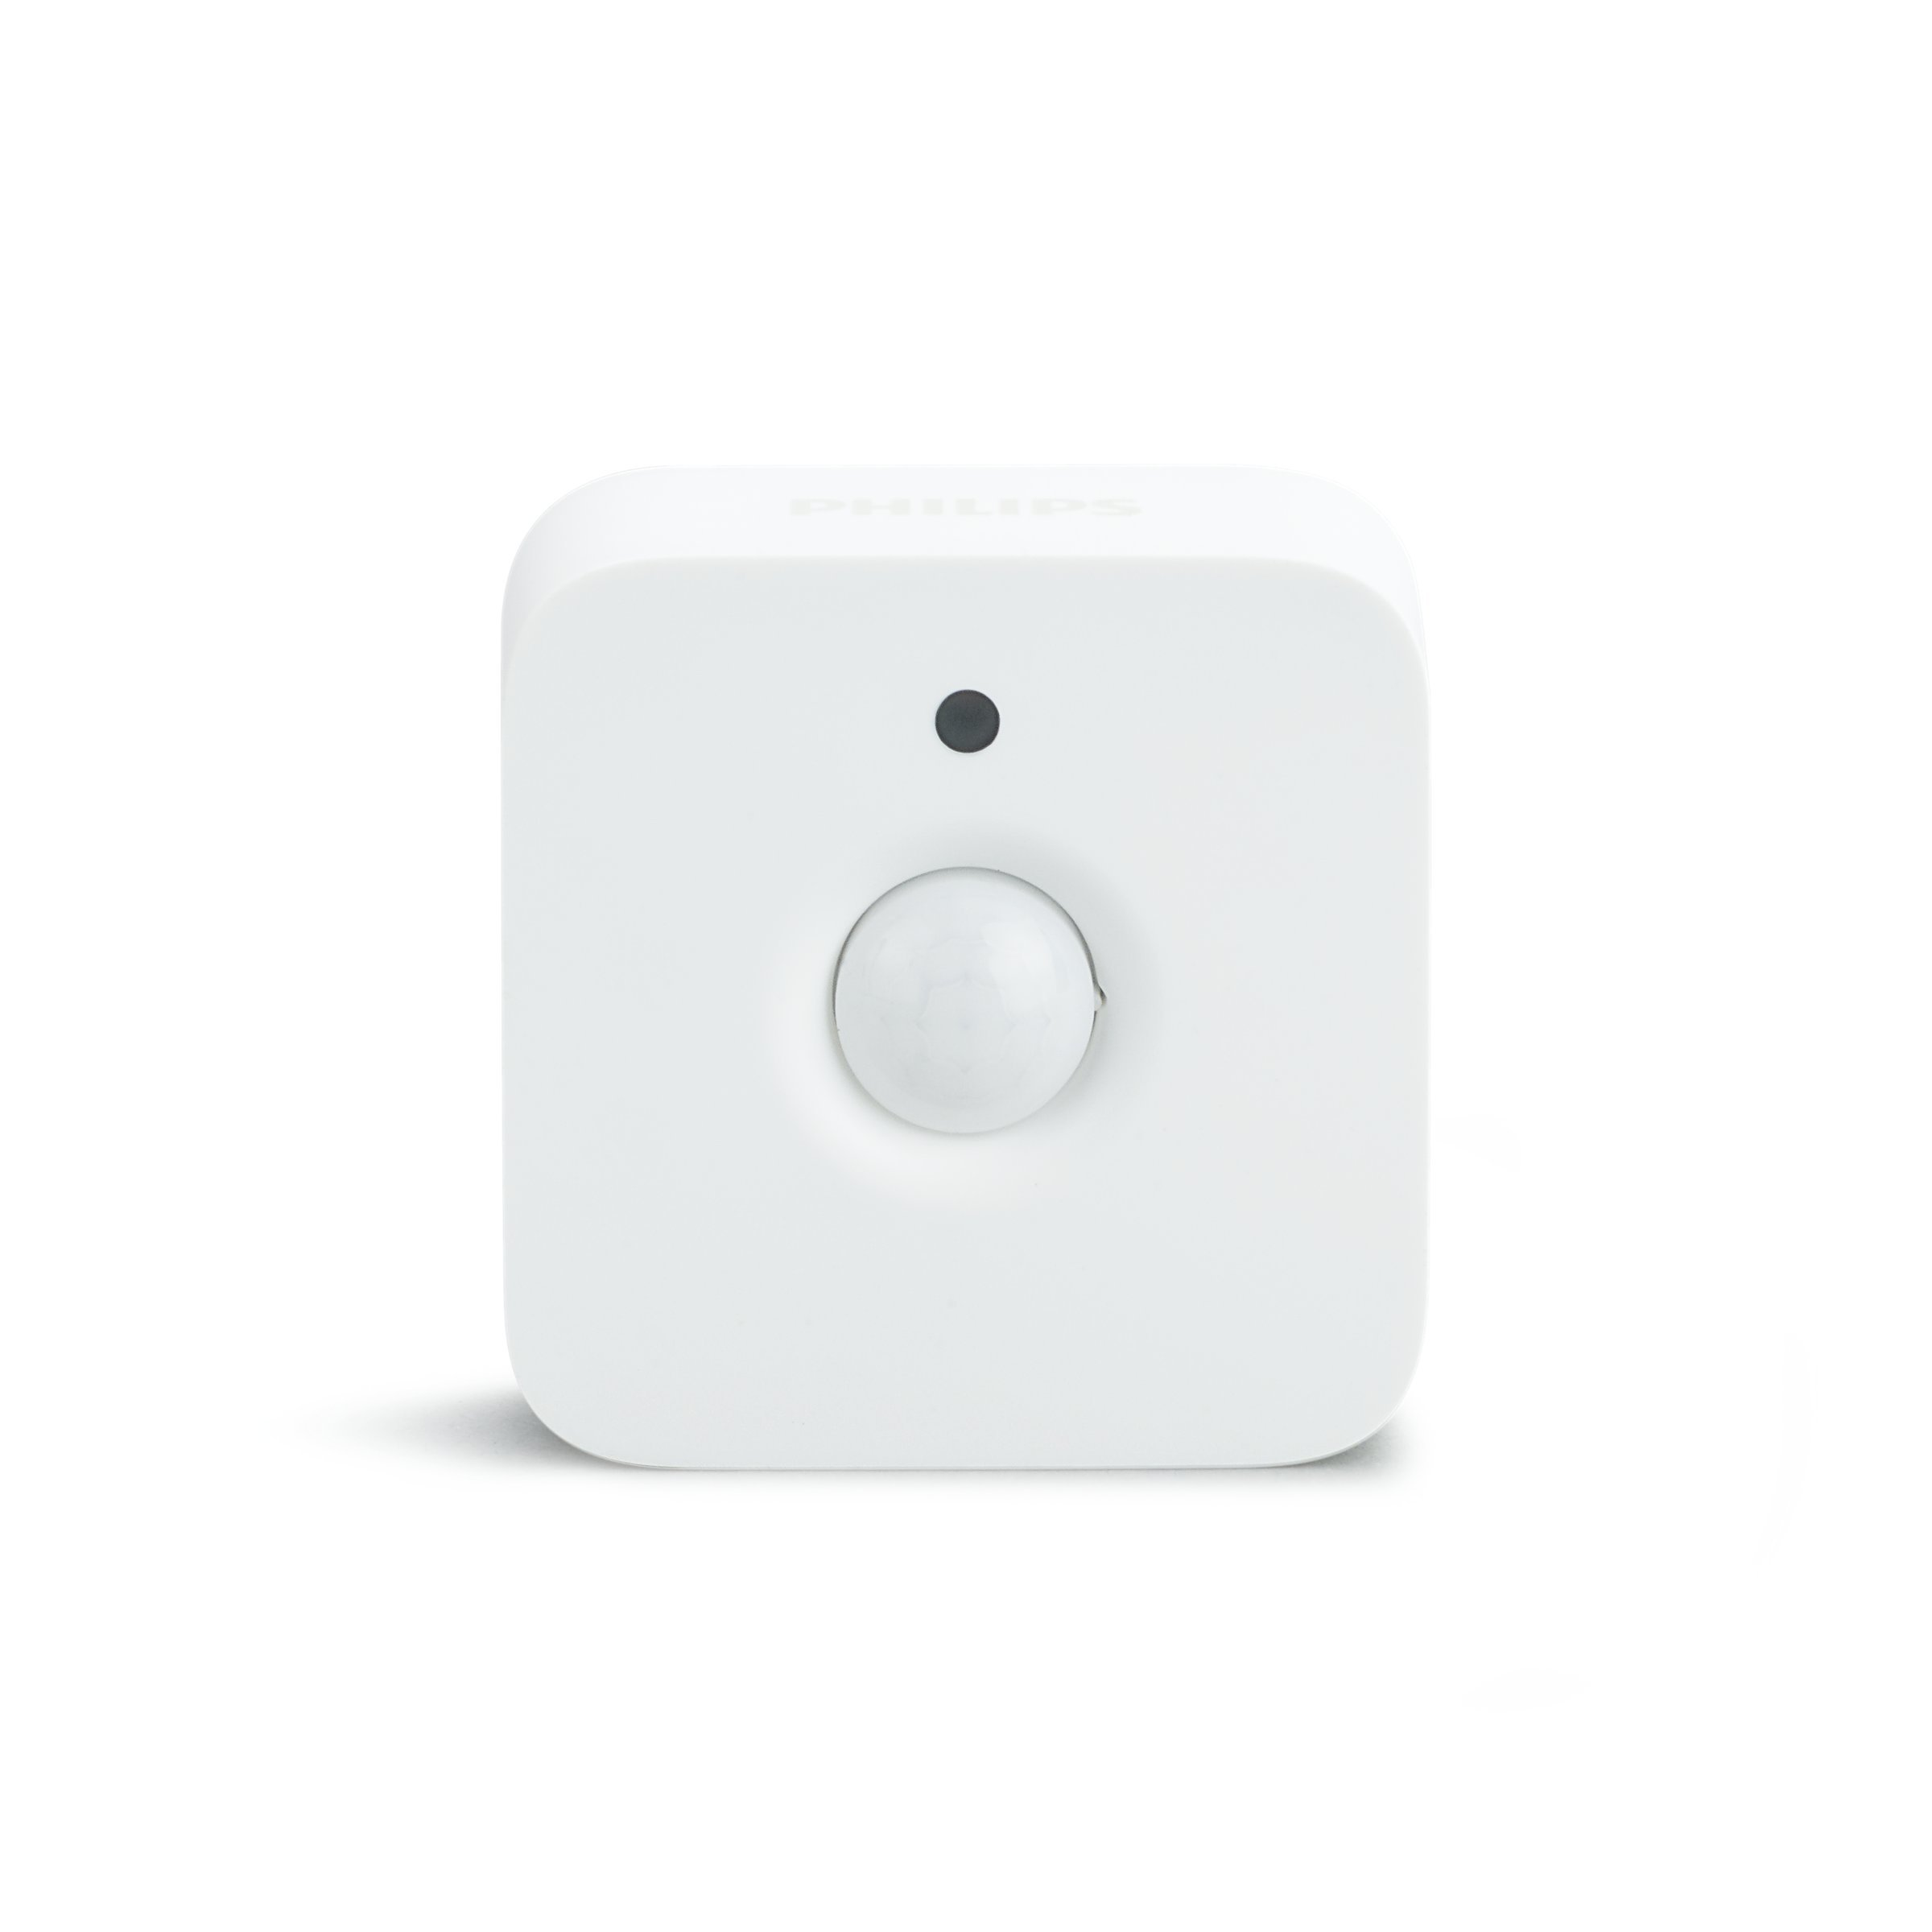 Philips Hue - Sensor de movimiento controlable vía WiFi, compatible con Amazon Alexa, Apple